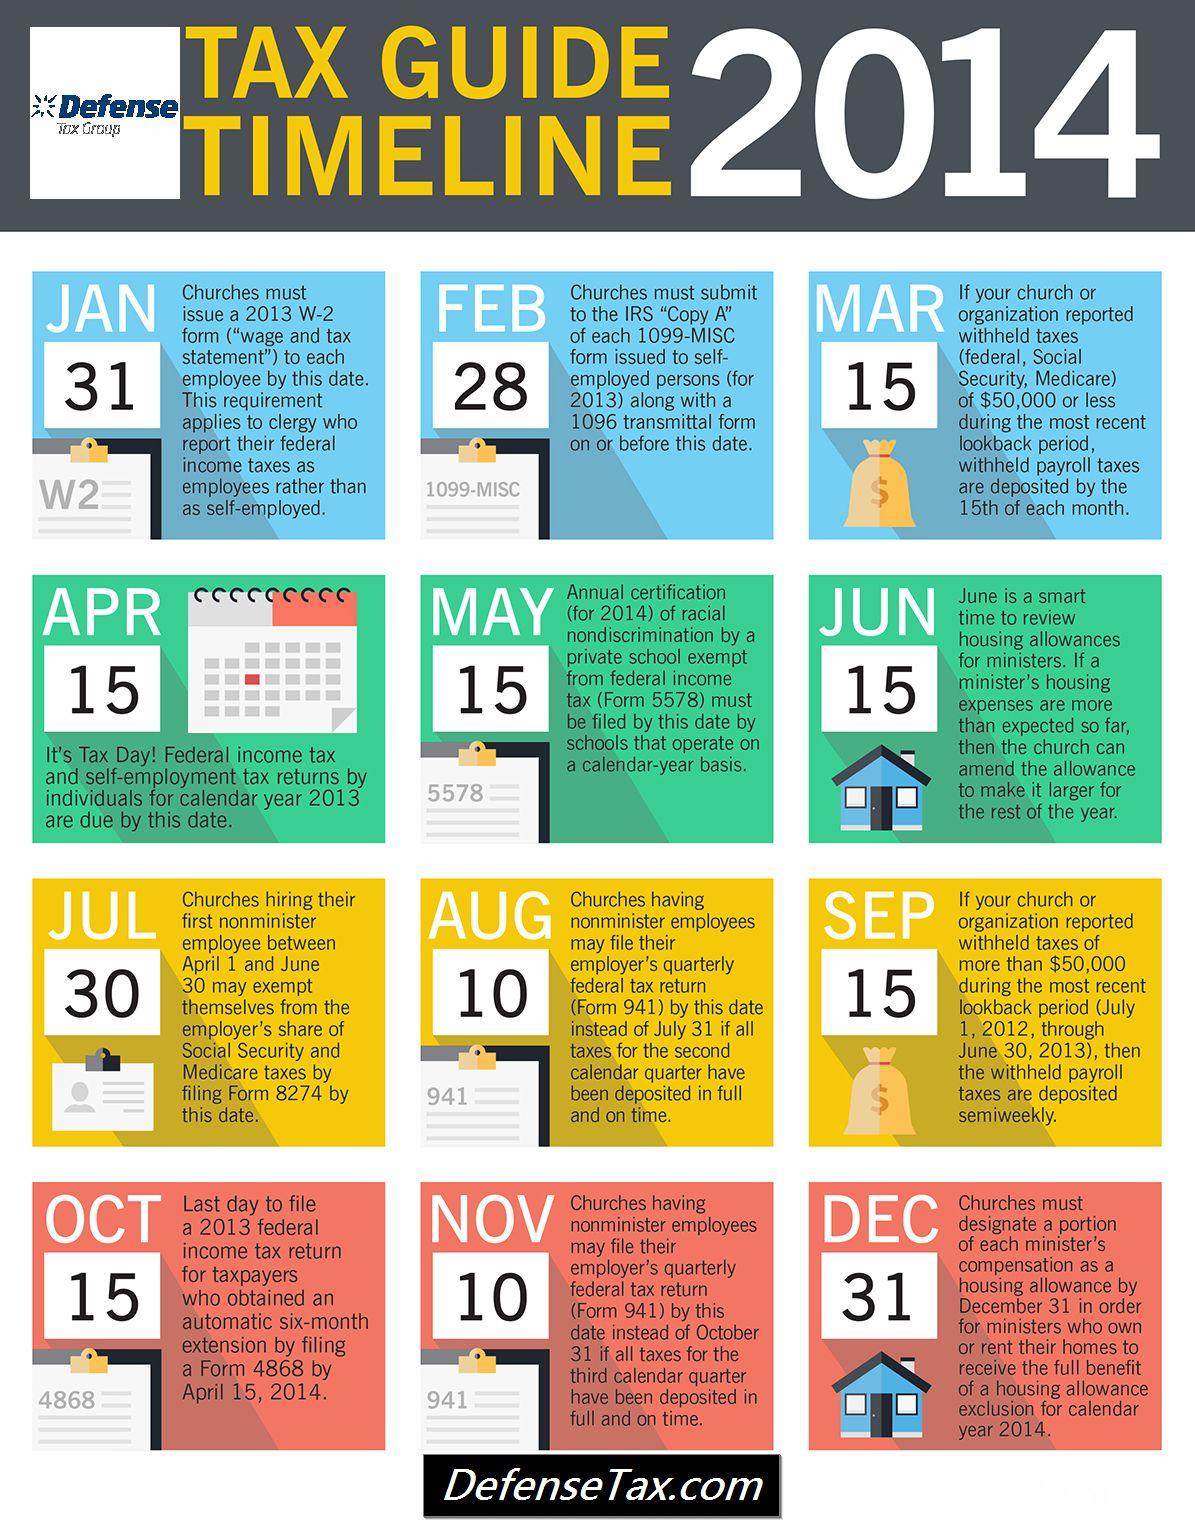 Tax guide timeline 2014 infographic critical dates deadlines and irs tax deadlines in year 2014 falaconquin